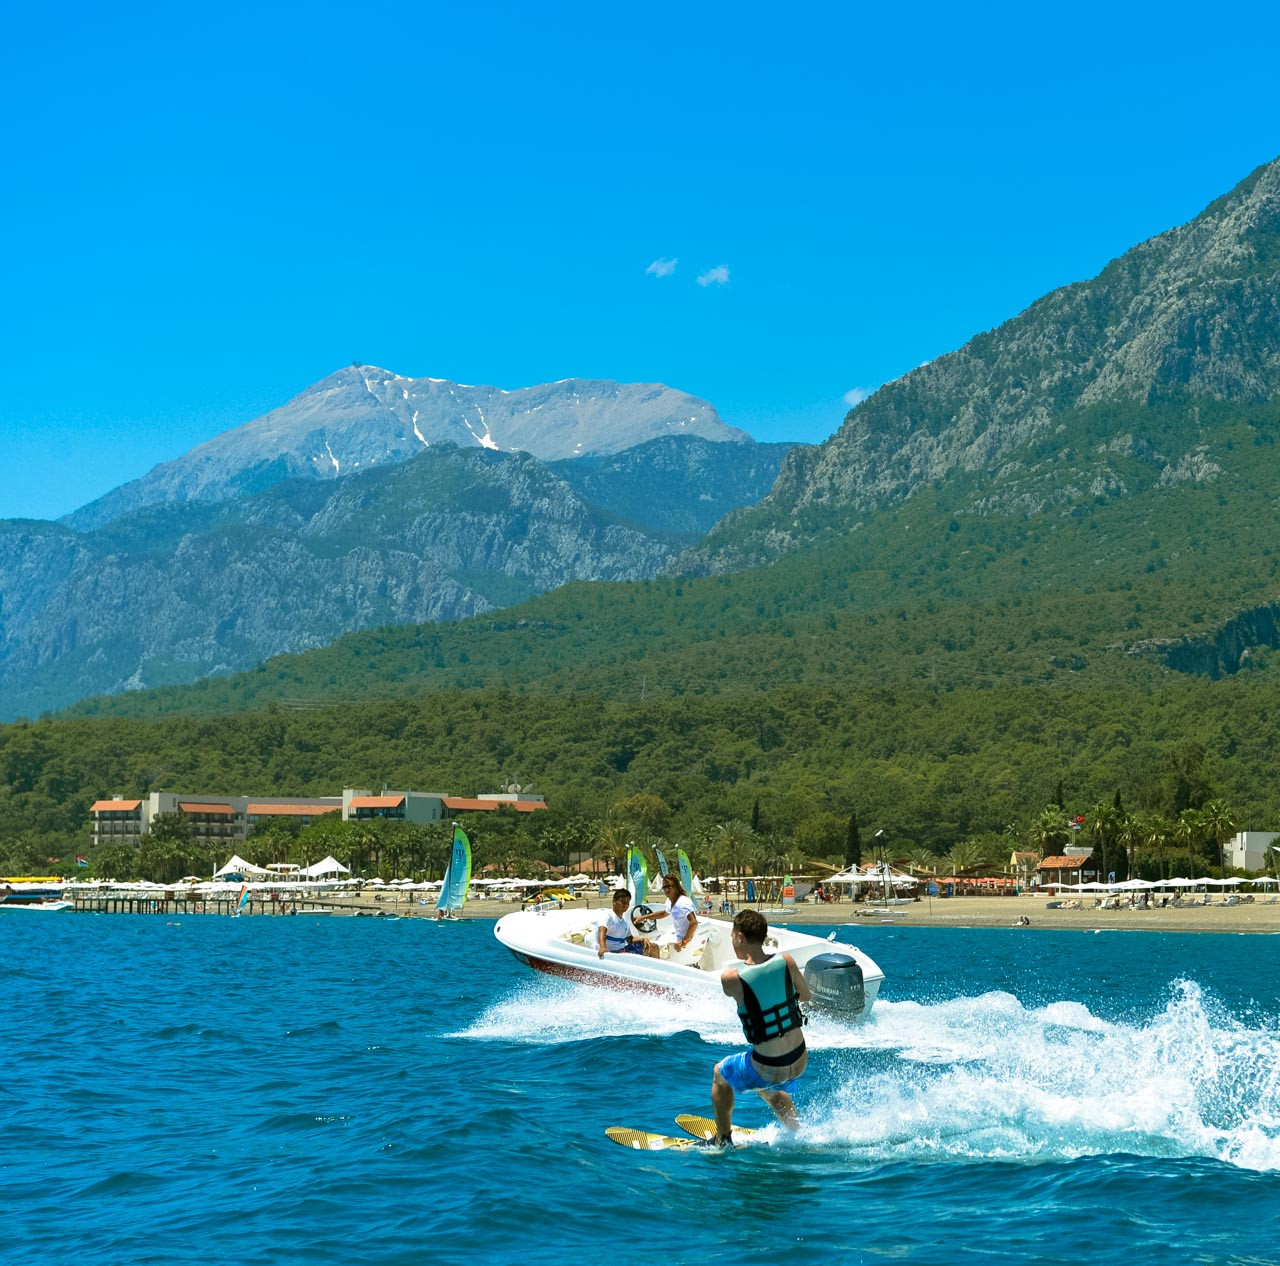 fred-van-eijk-club-med-palmiye-kemerturkije-watersport